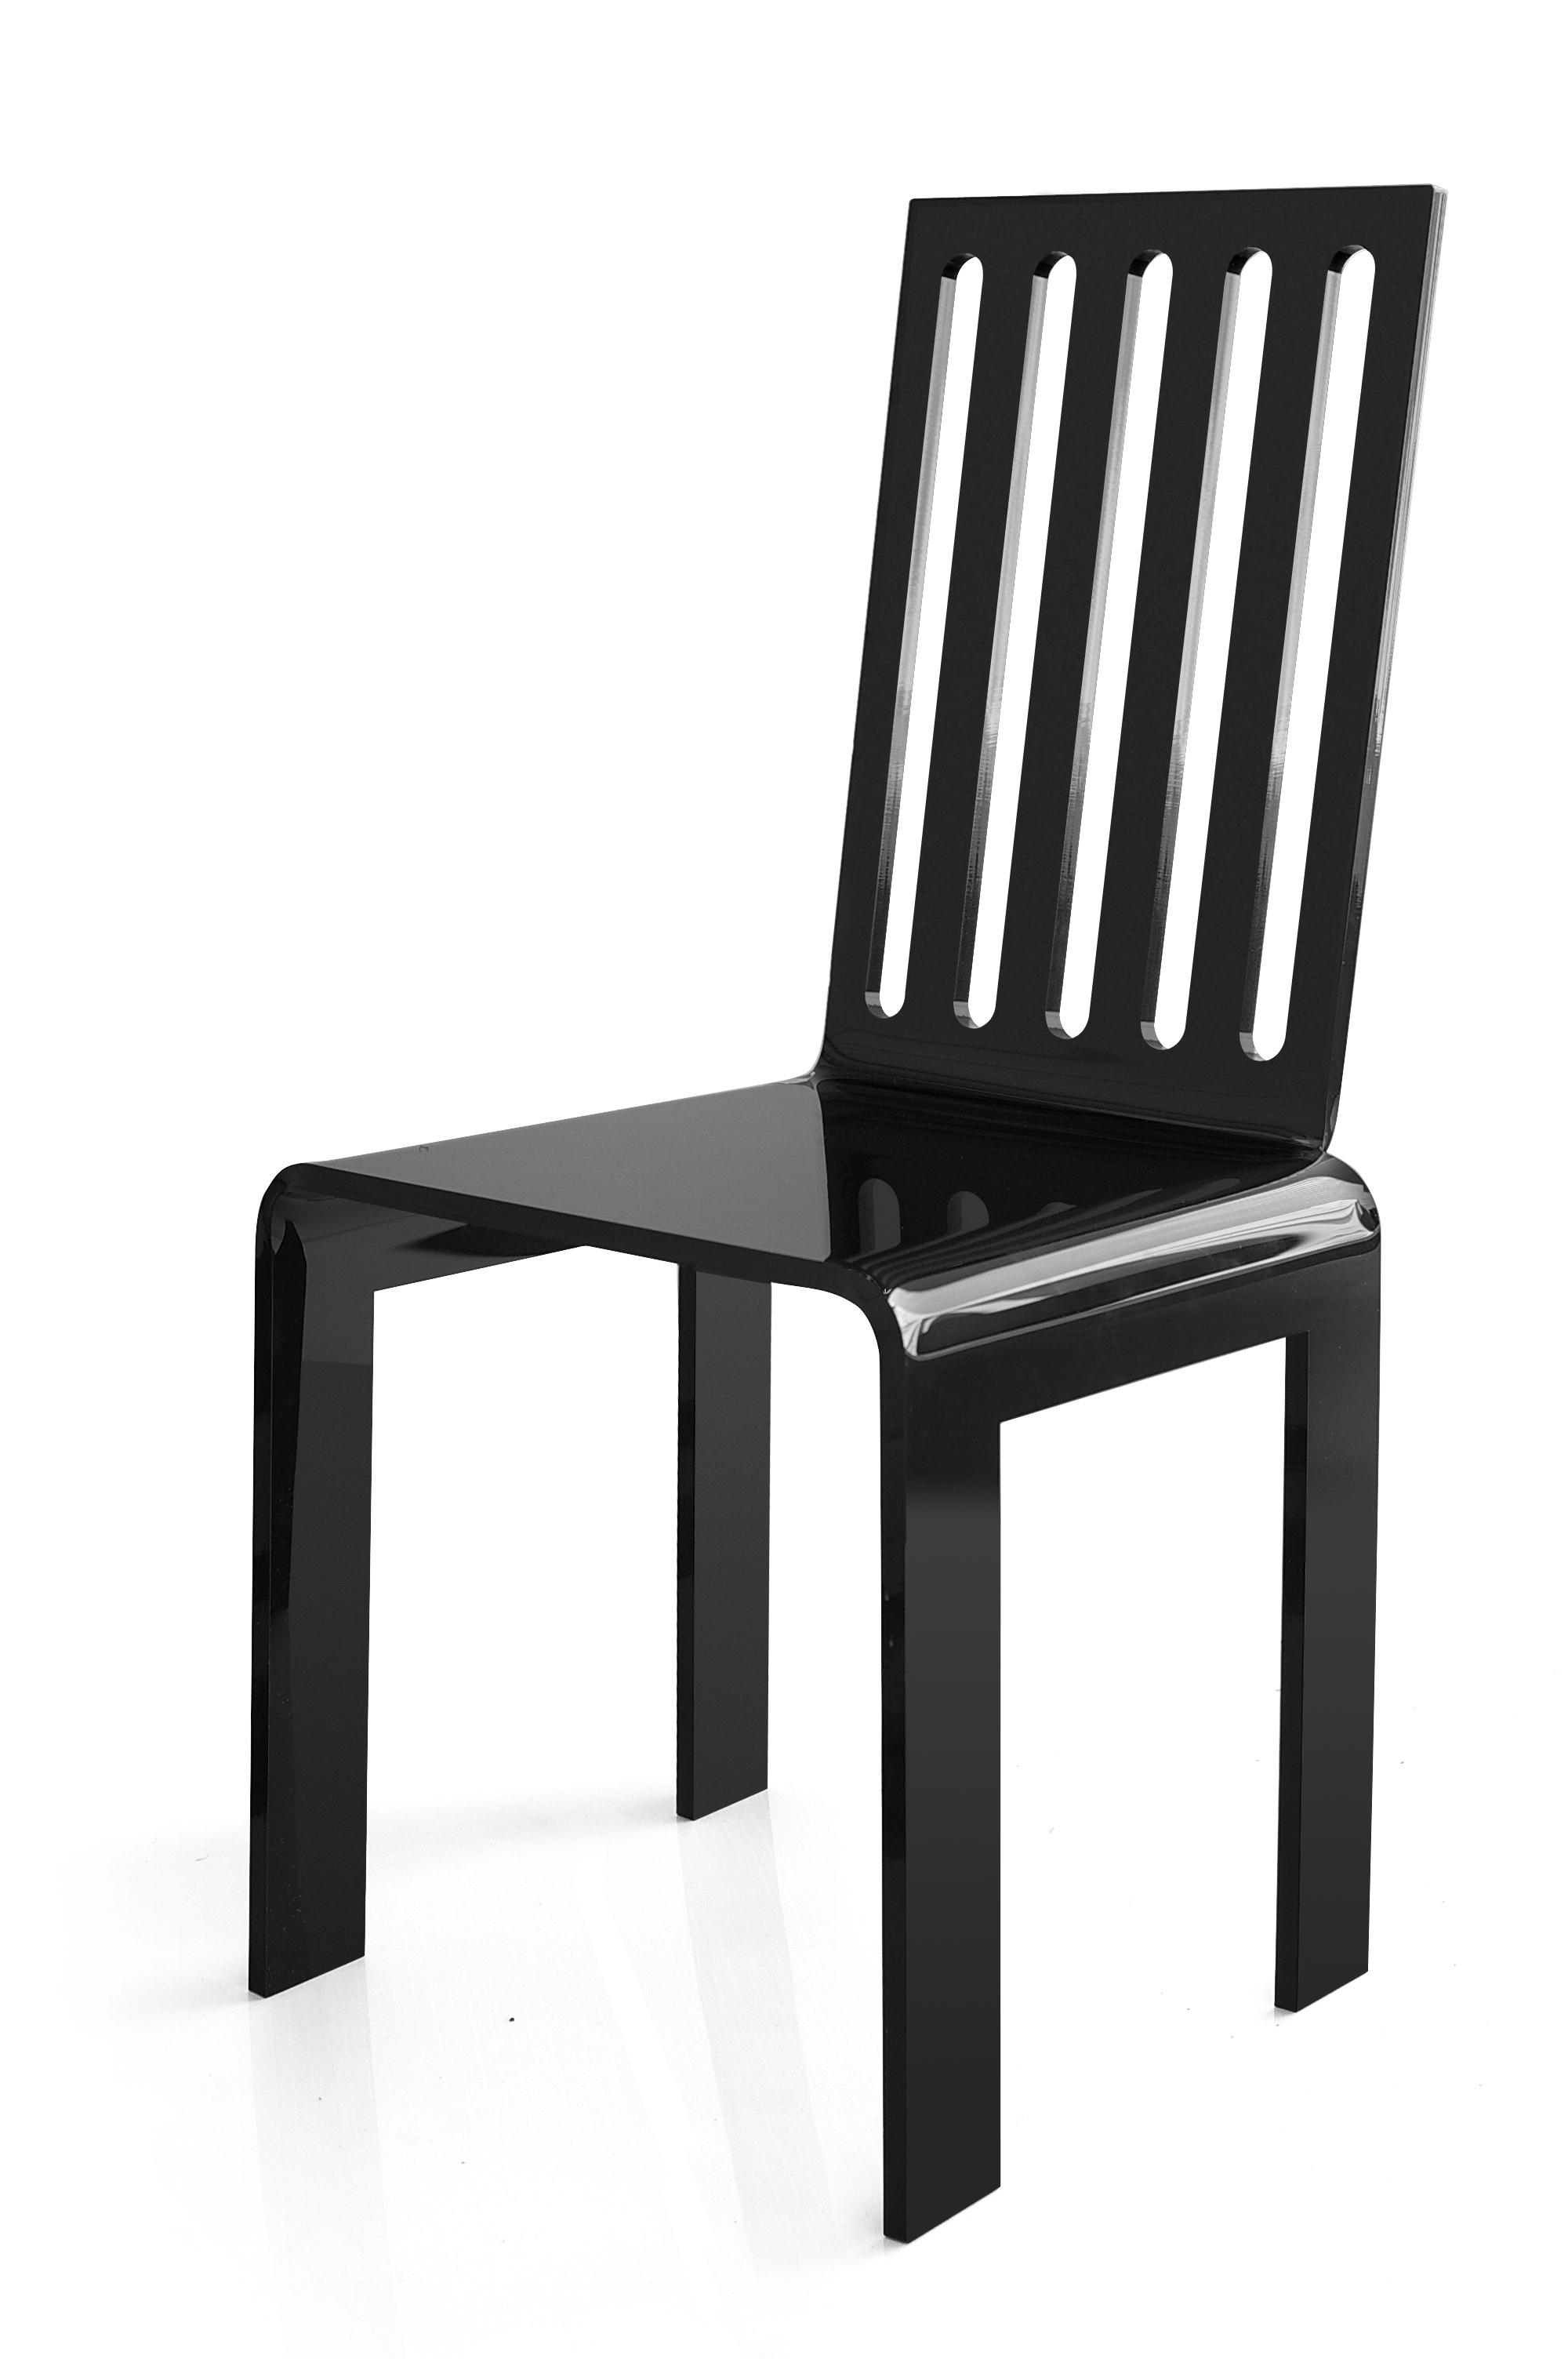 Chaise barreau noir.jpg